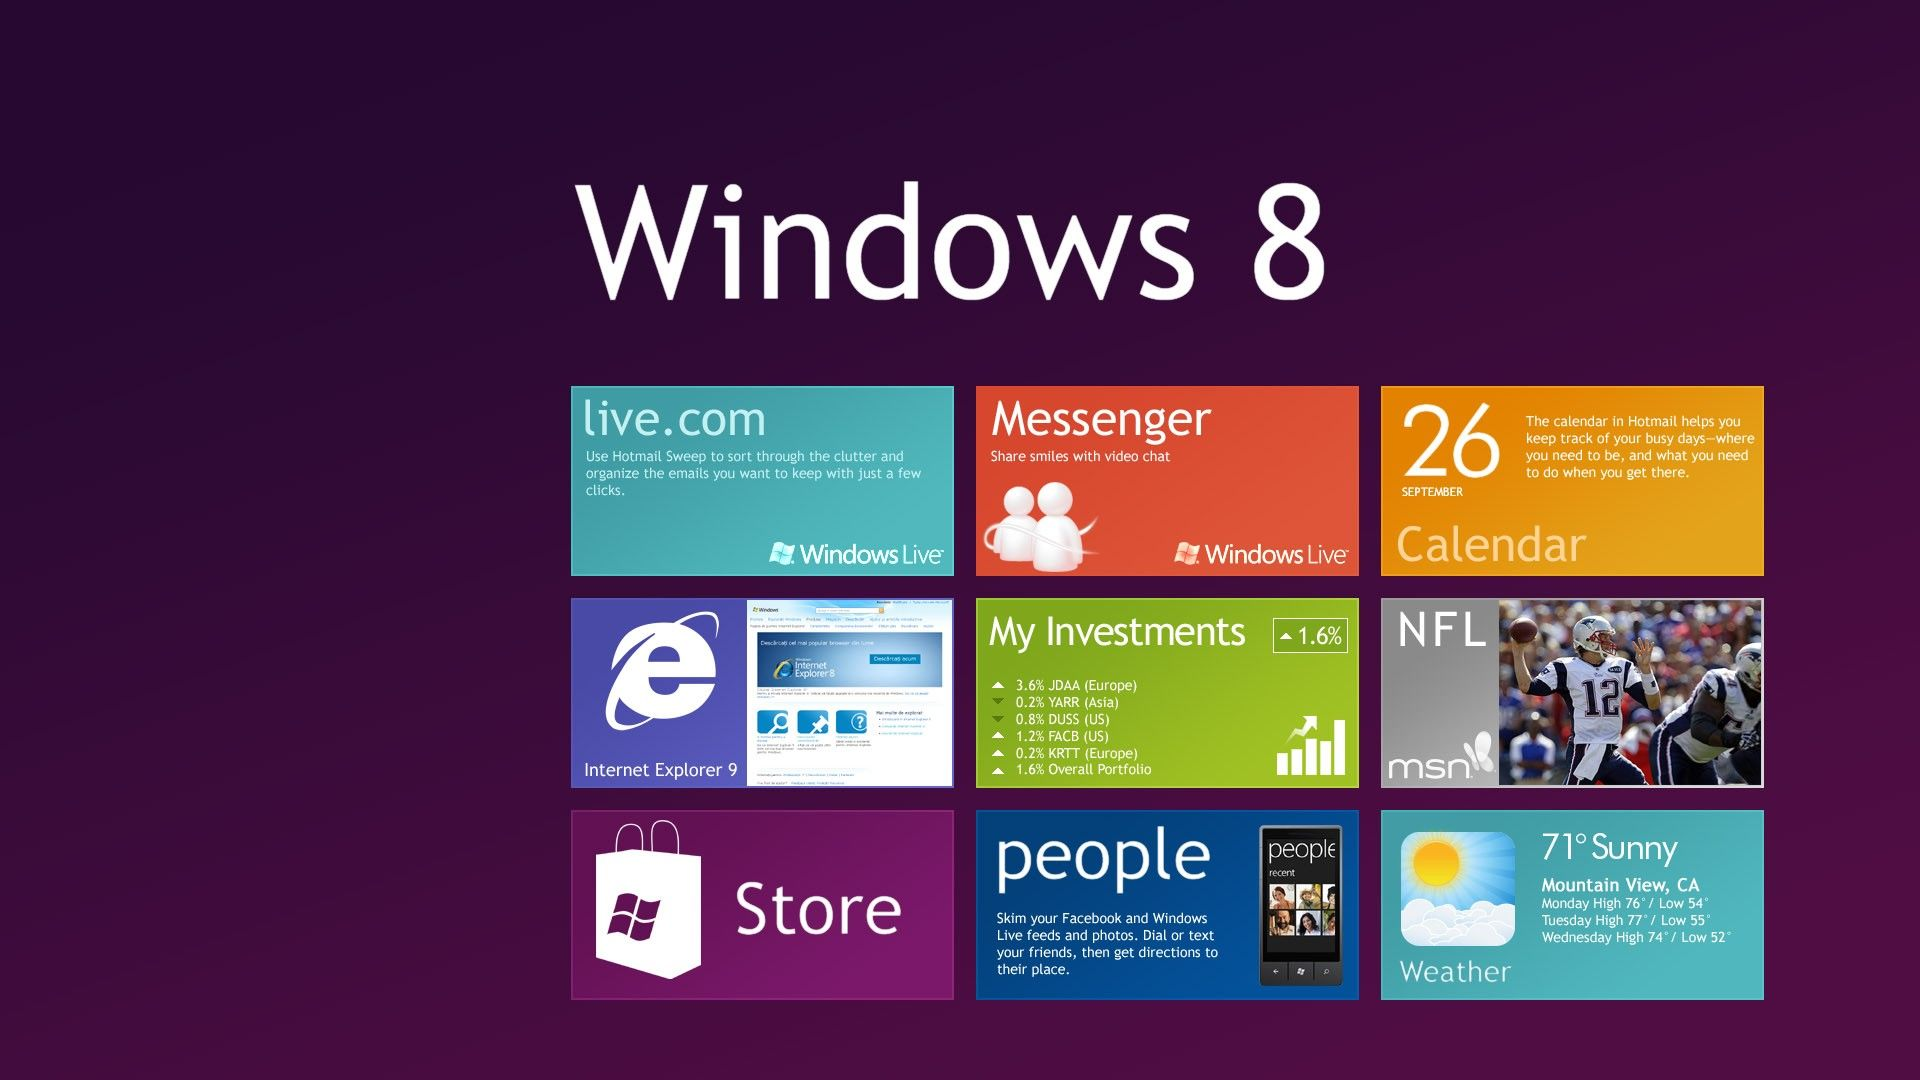 Windows 8 background image disappears - Wallpaper Super Cool Windows Wallpapers Hd Ideas For The